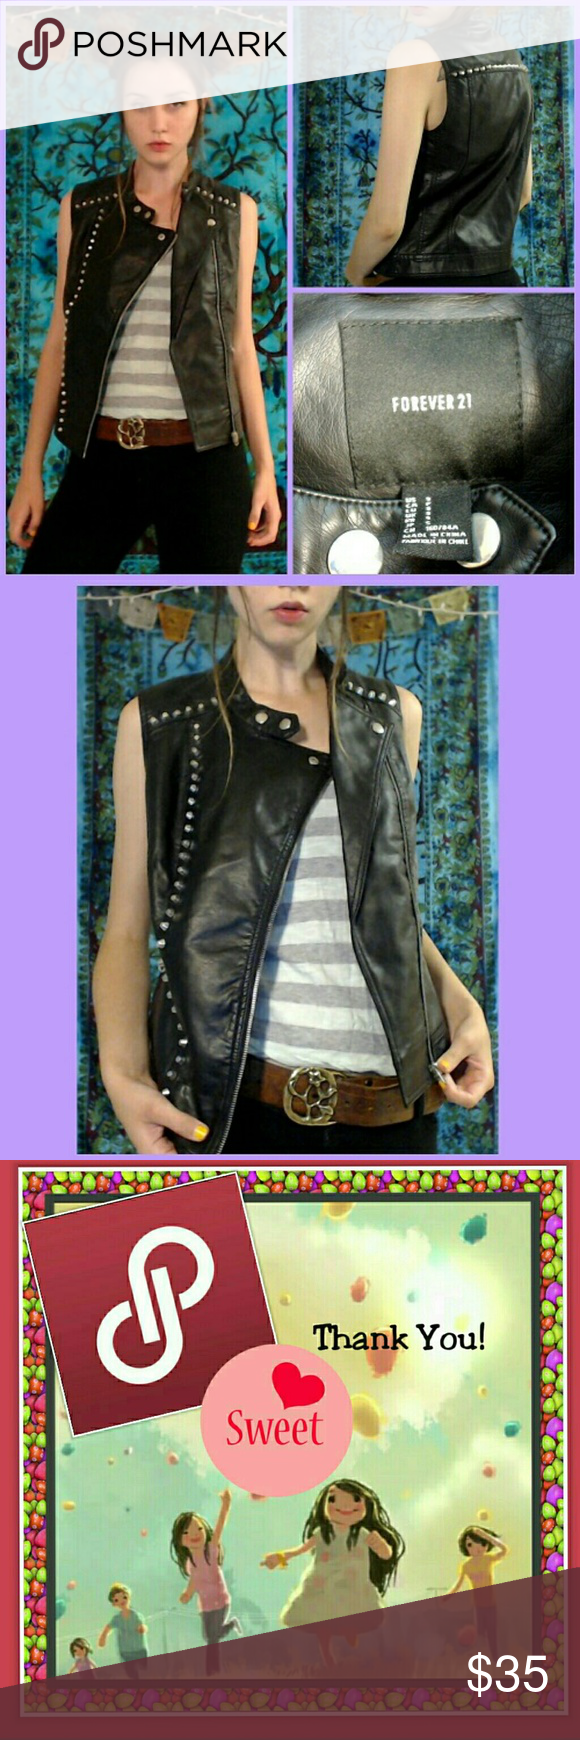 "💀Black Studded Moto Vest Jacket S/M 💀 Forever 21, F21 Black Vegan/Faux Leather Studded Moto Jacket Vest/Gilet. Rare. I haven't came across one just like this? 27 Studs on Front Side, 18 Studs on Upper Back Across, 6 Studs on Each Side of Shoulder/Collar Bone. 2 Snap Buttons For Fitting around Collar, Zipper Pockets on Both Sides. Zips Up, Let Unzipped and Its a New Fashion Design Size: Small, But Could Fit Up to Medium. Measures, 17"" Width of Chest From Armpit to Armpit Seam, 17.5"" Width…"